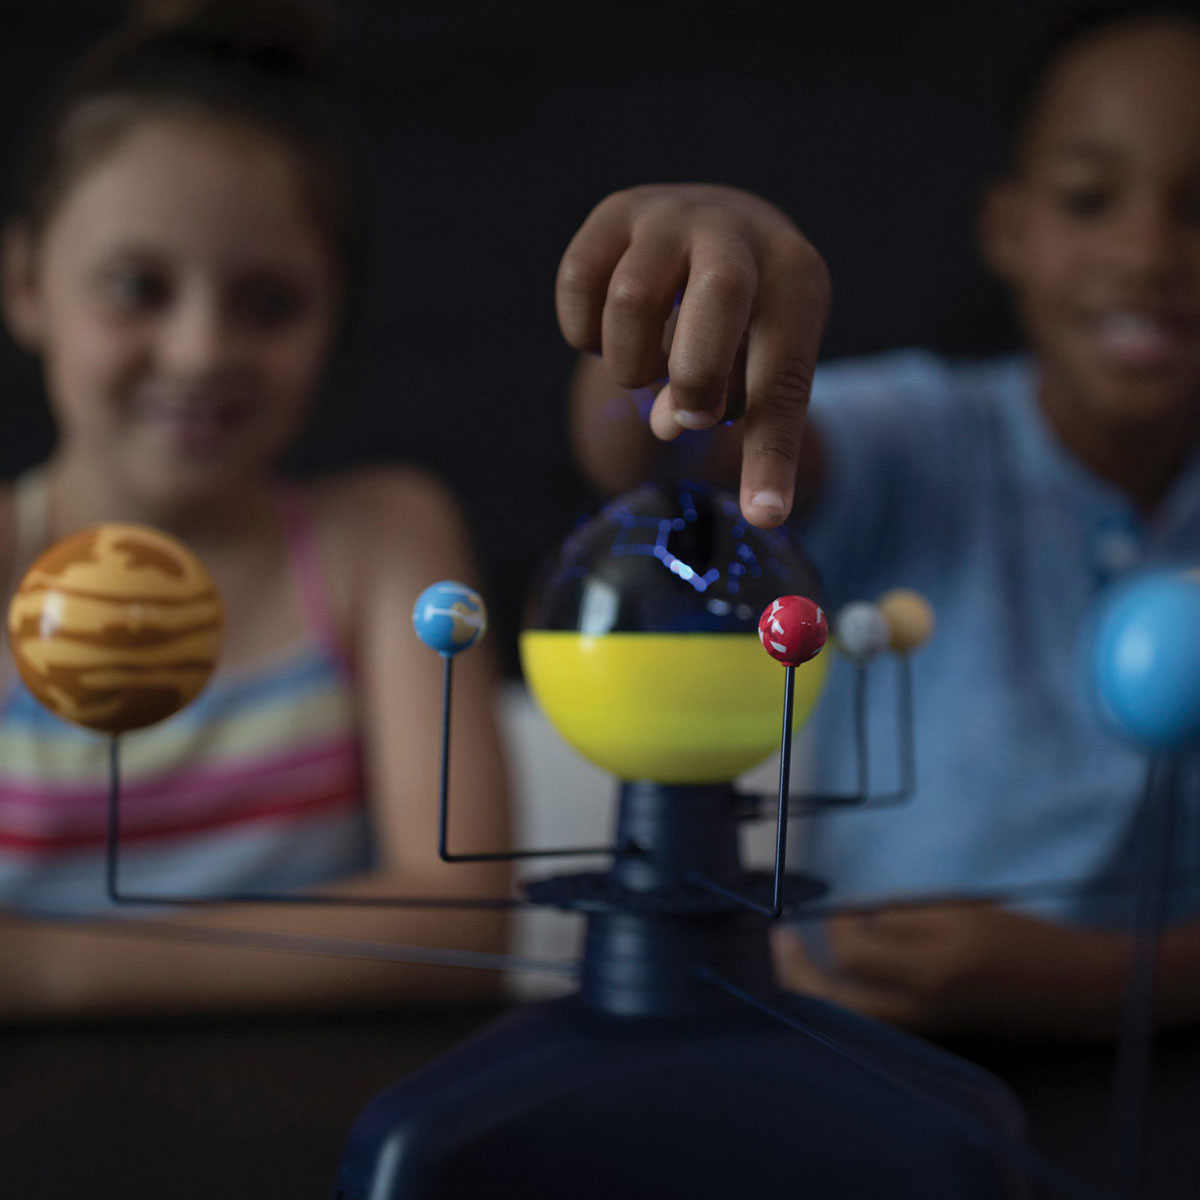 solar system learning - photo #41